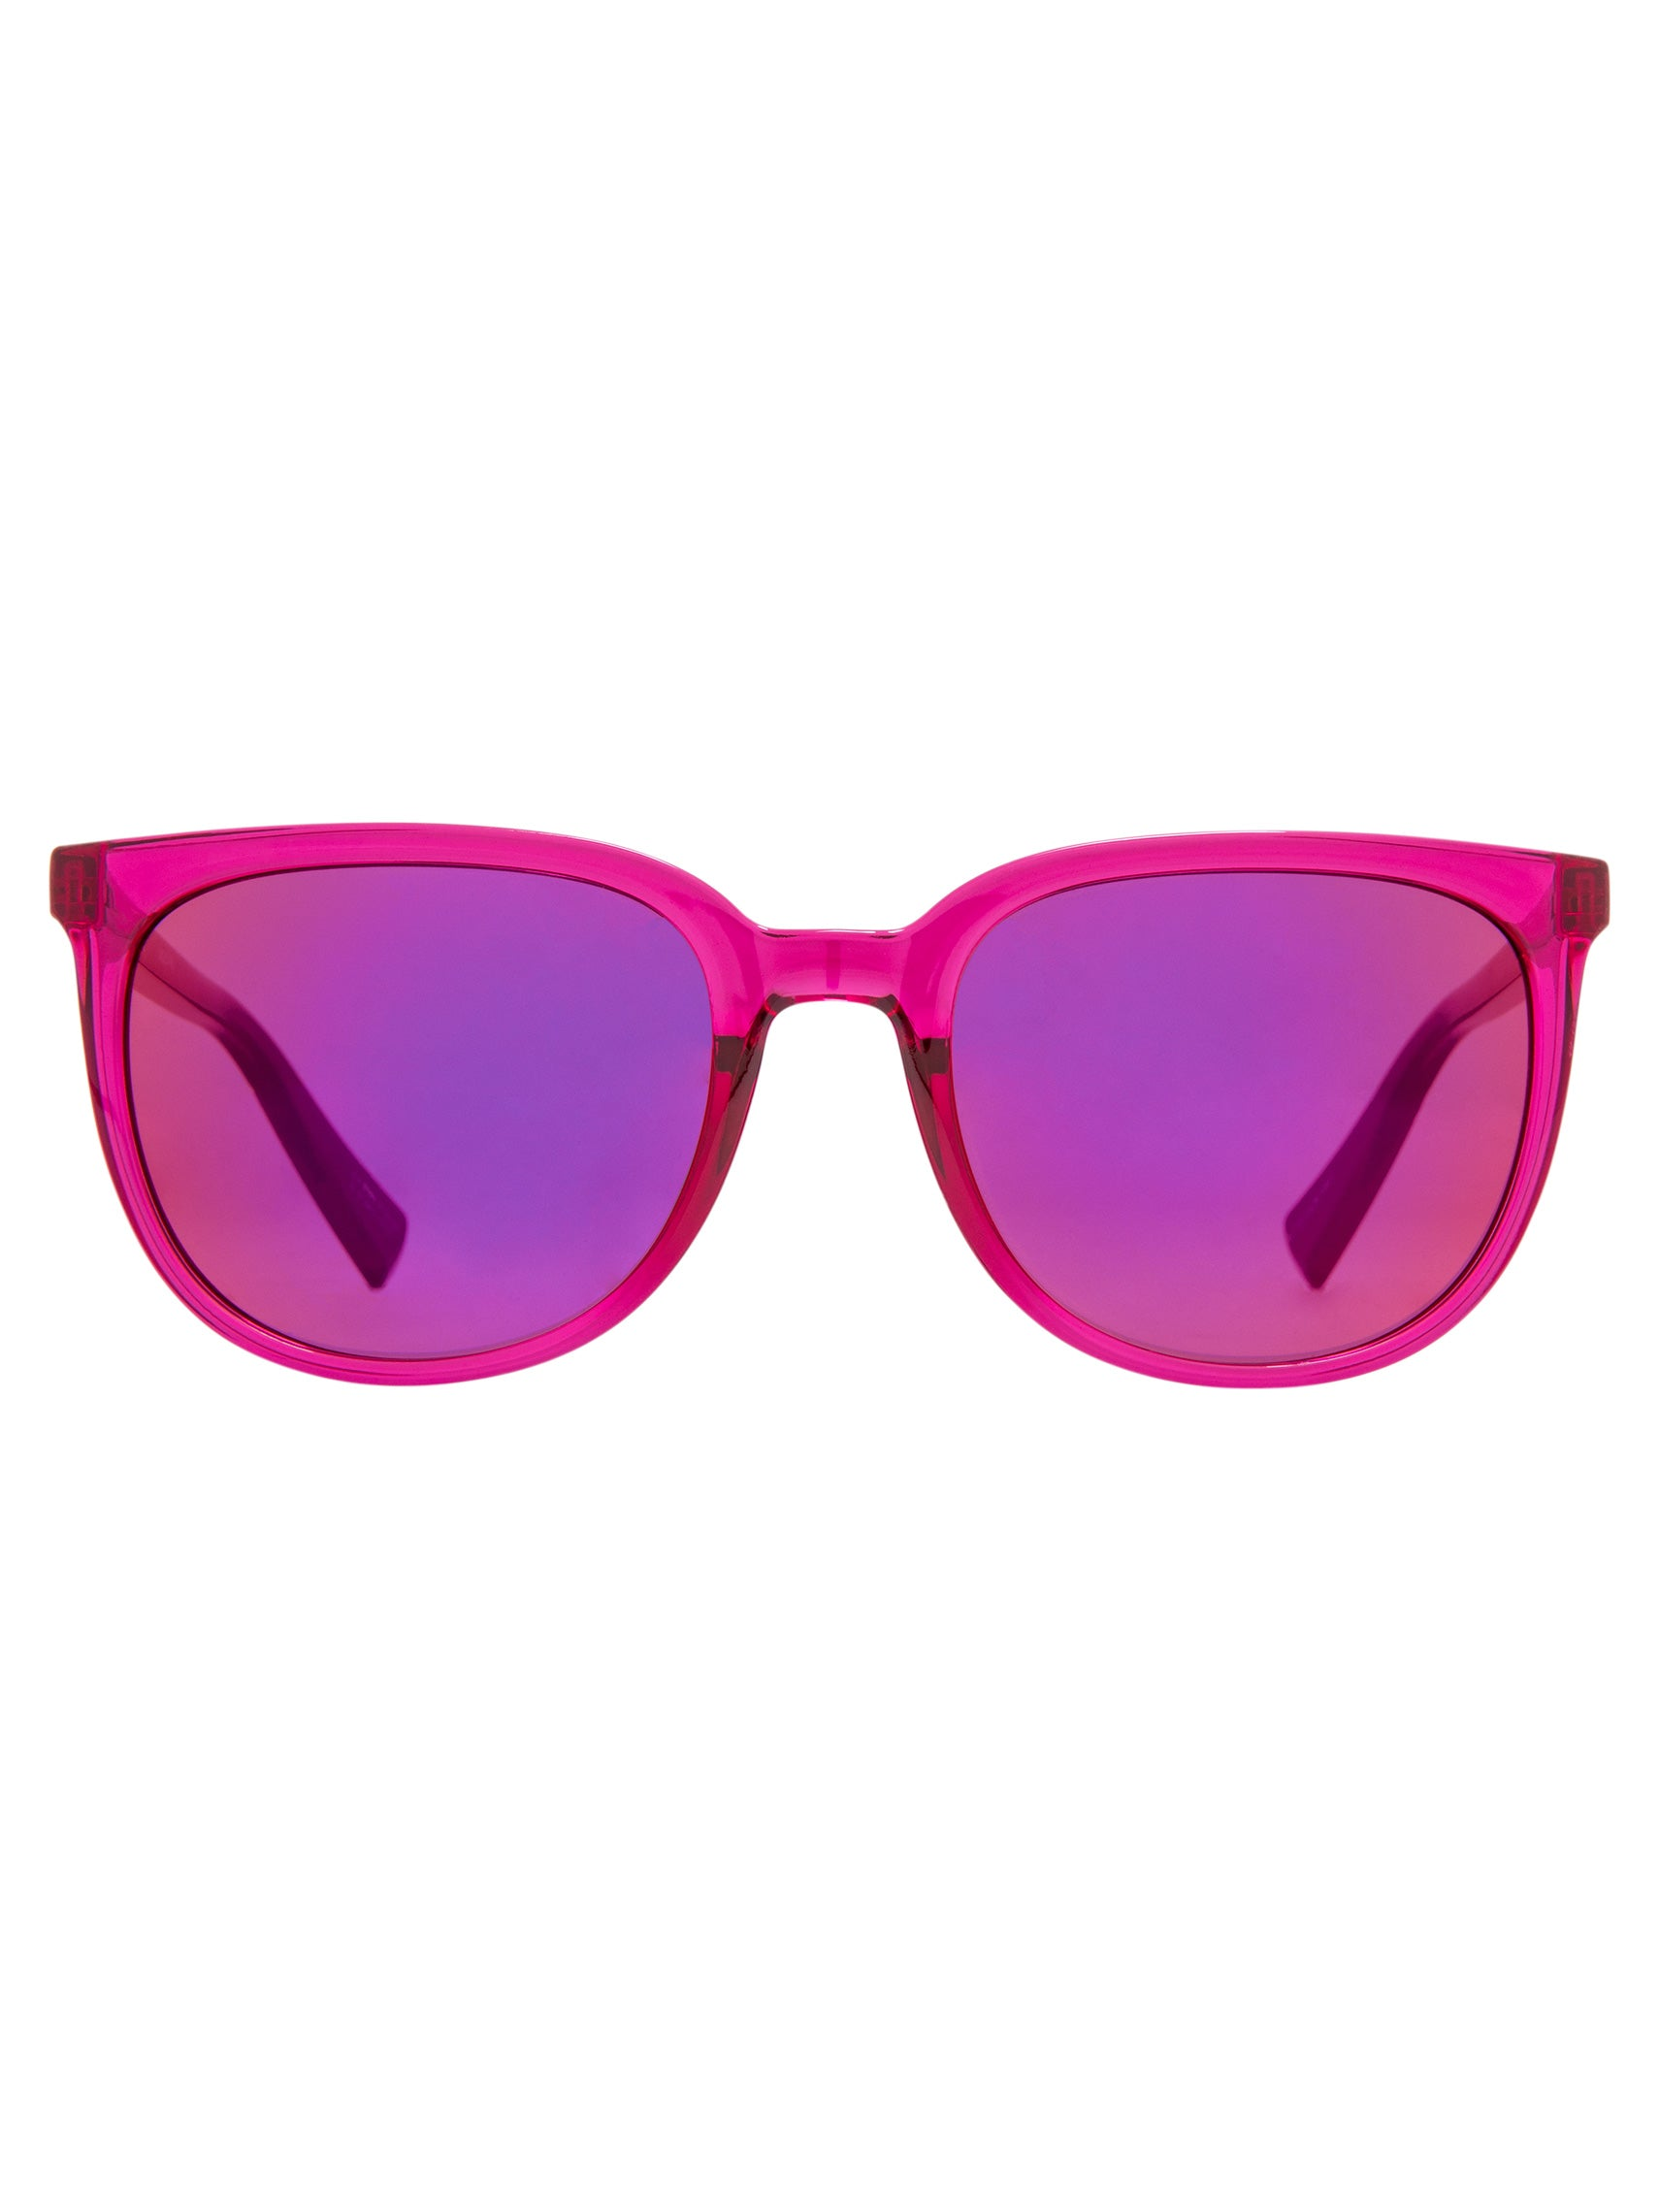 SPY OPTIC<br>Fizz Sunglasses